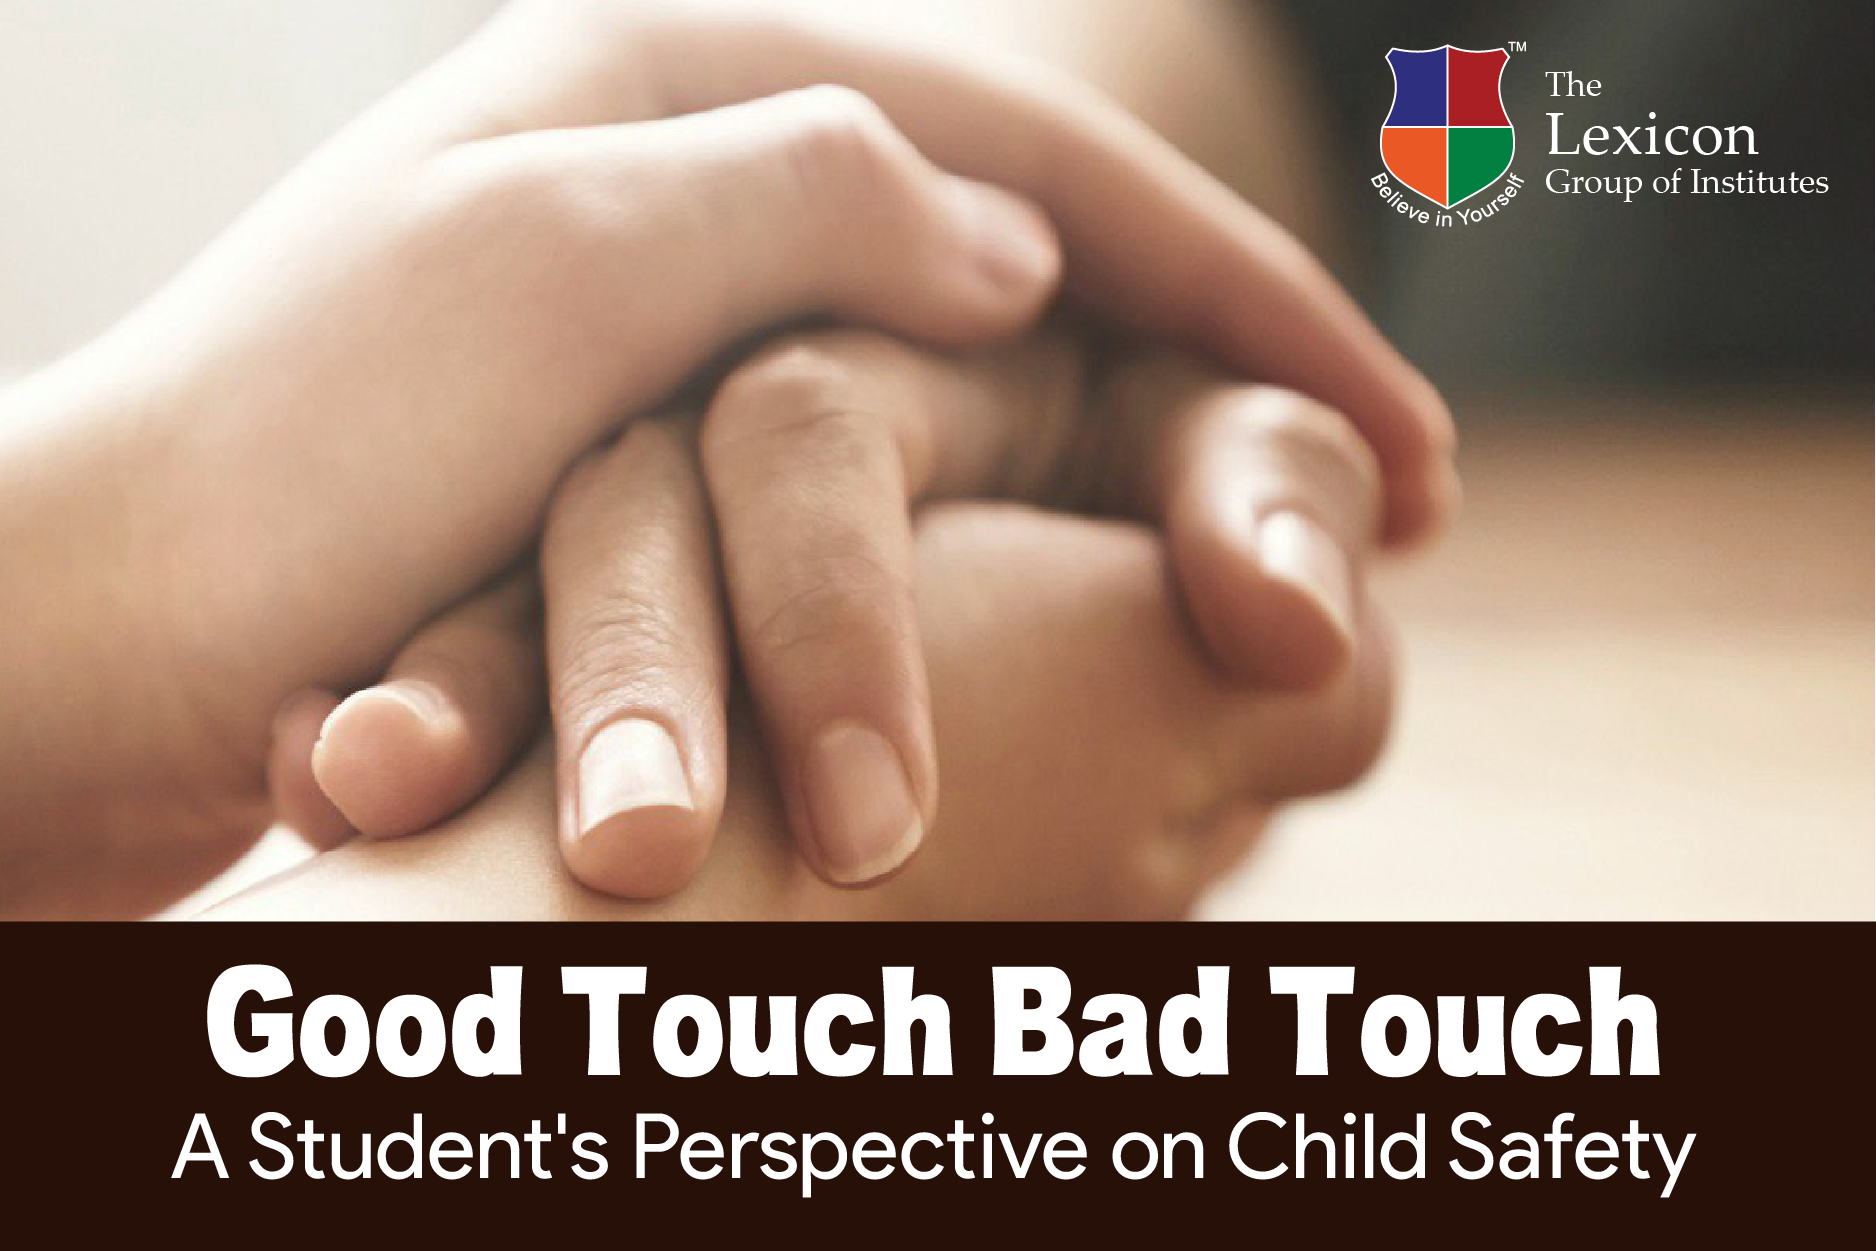 Good Touch Bad Touch- A Student's Perspective on Child Safety